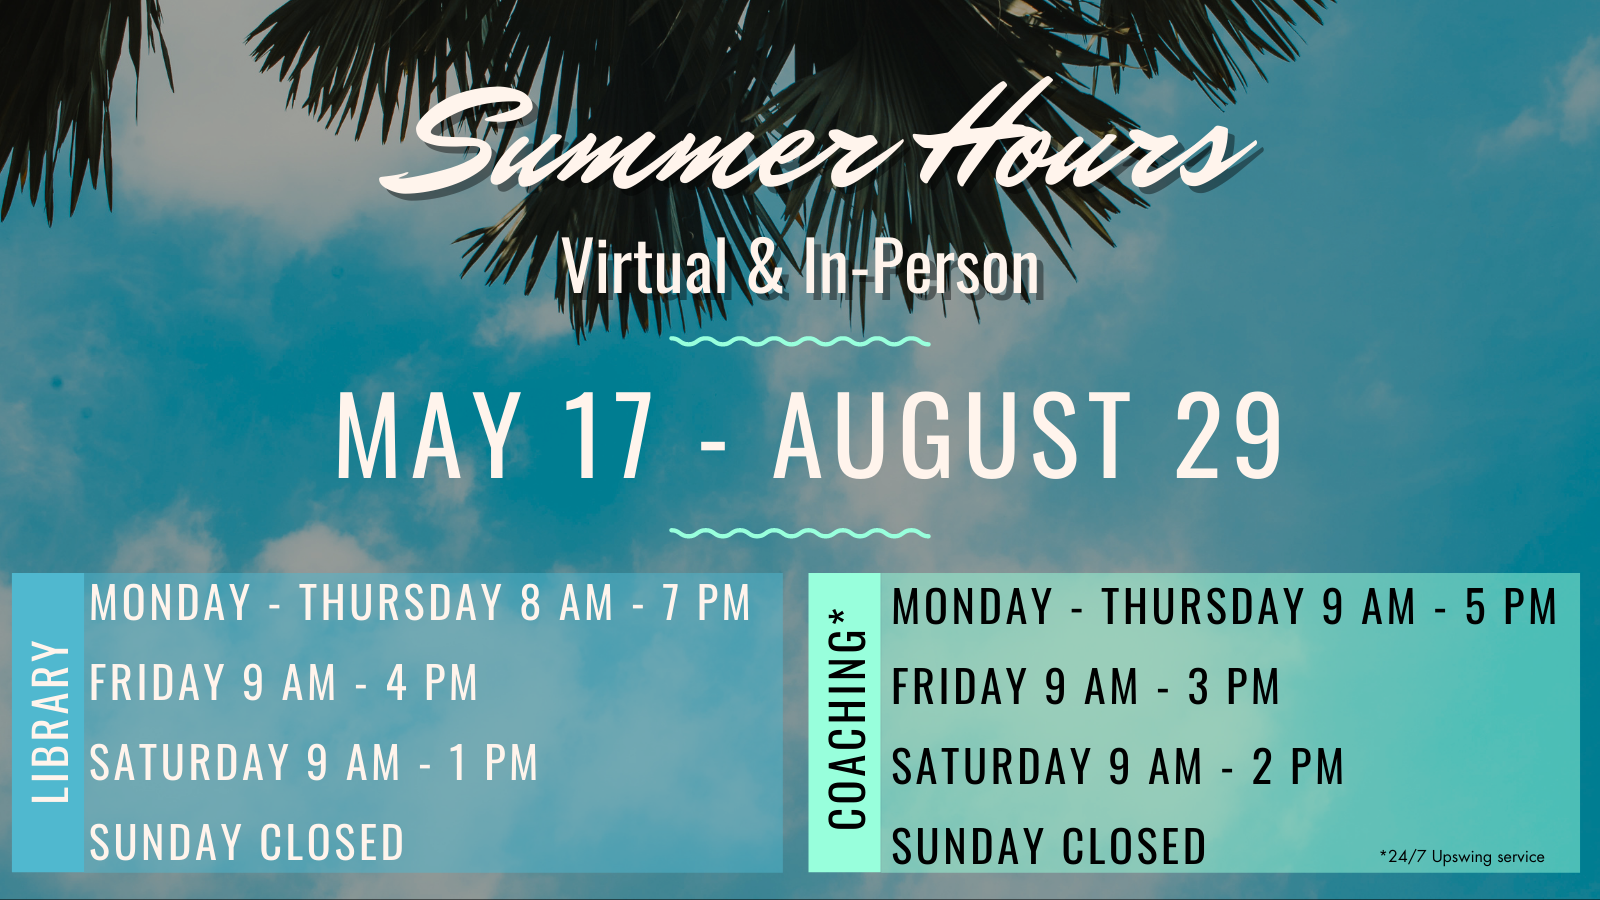 Library is open Monday through Thursday, 8 a.m. to 7 p.m., Friday, 9 to 4, Saturday, 9 to 1. Coaching is available Monday through Thursday, 9 a.m. to 5 p.m., Friday, 9 - 3, Saturday, 9 - 2, and closed Sunday. 24/7 tutoring is available through Upswing.